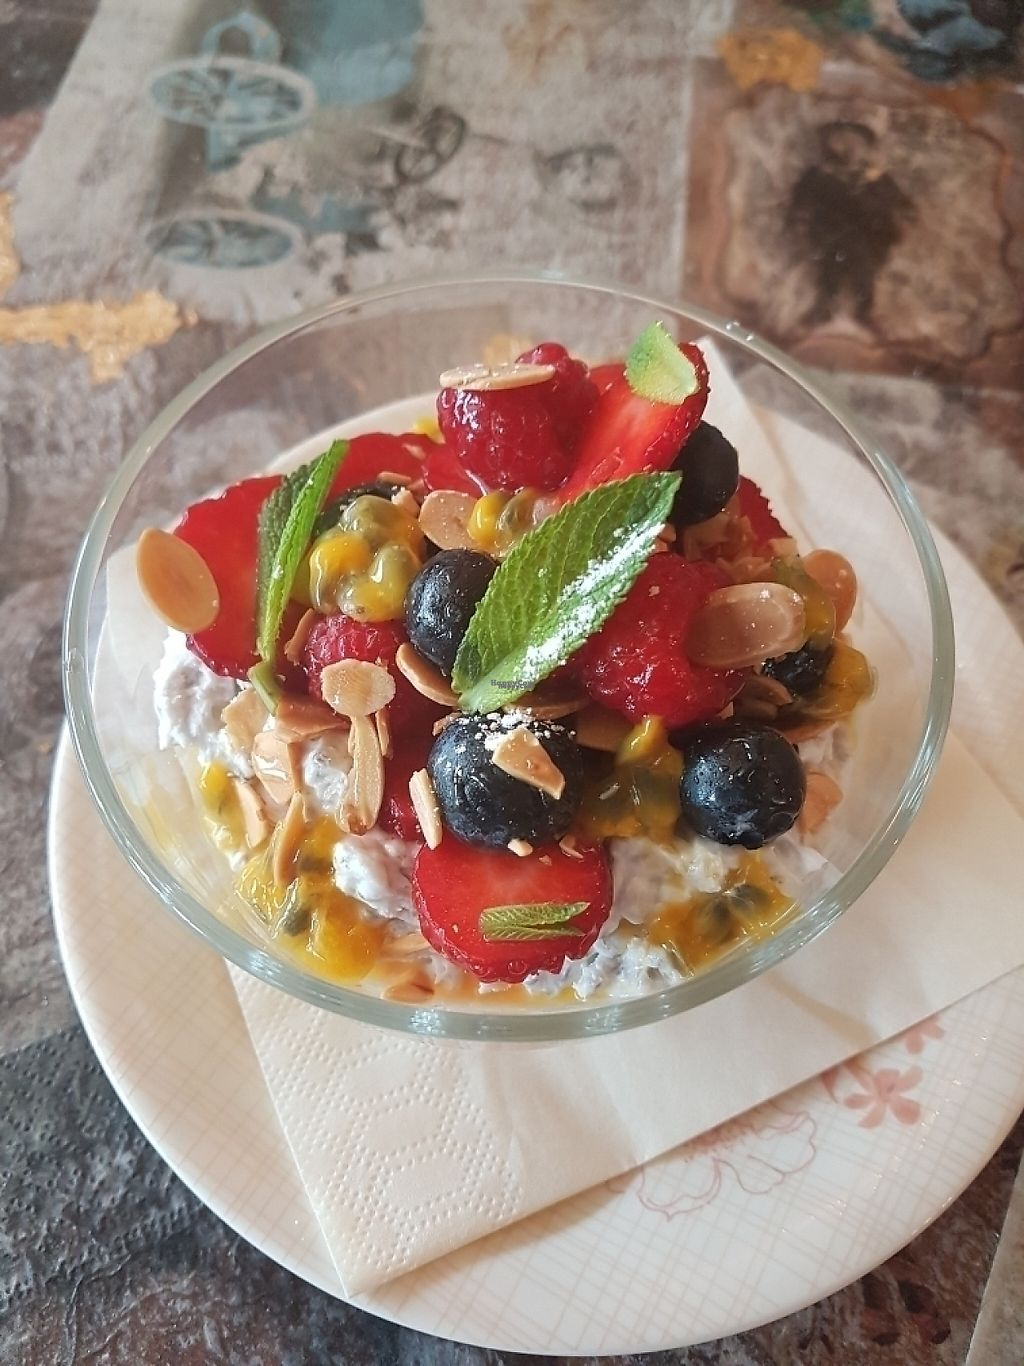 "Photo of The Lions Monocle   by <a href=""/members/profile/TheLionsMonocle"">TheLionsMonocle</a> <br/>Chia, Coconut, Passionfruit & Fresh Berries  <br/> April 27, 2017  - <a href='/contact/abuse/image/91128/253200'>Report</a>"